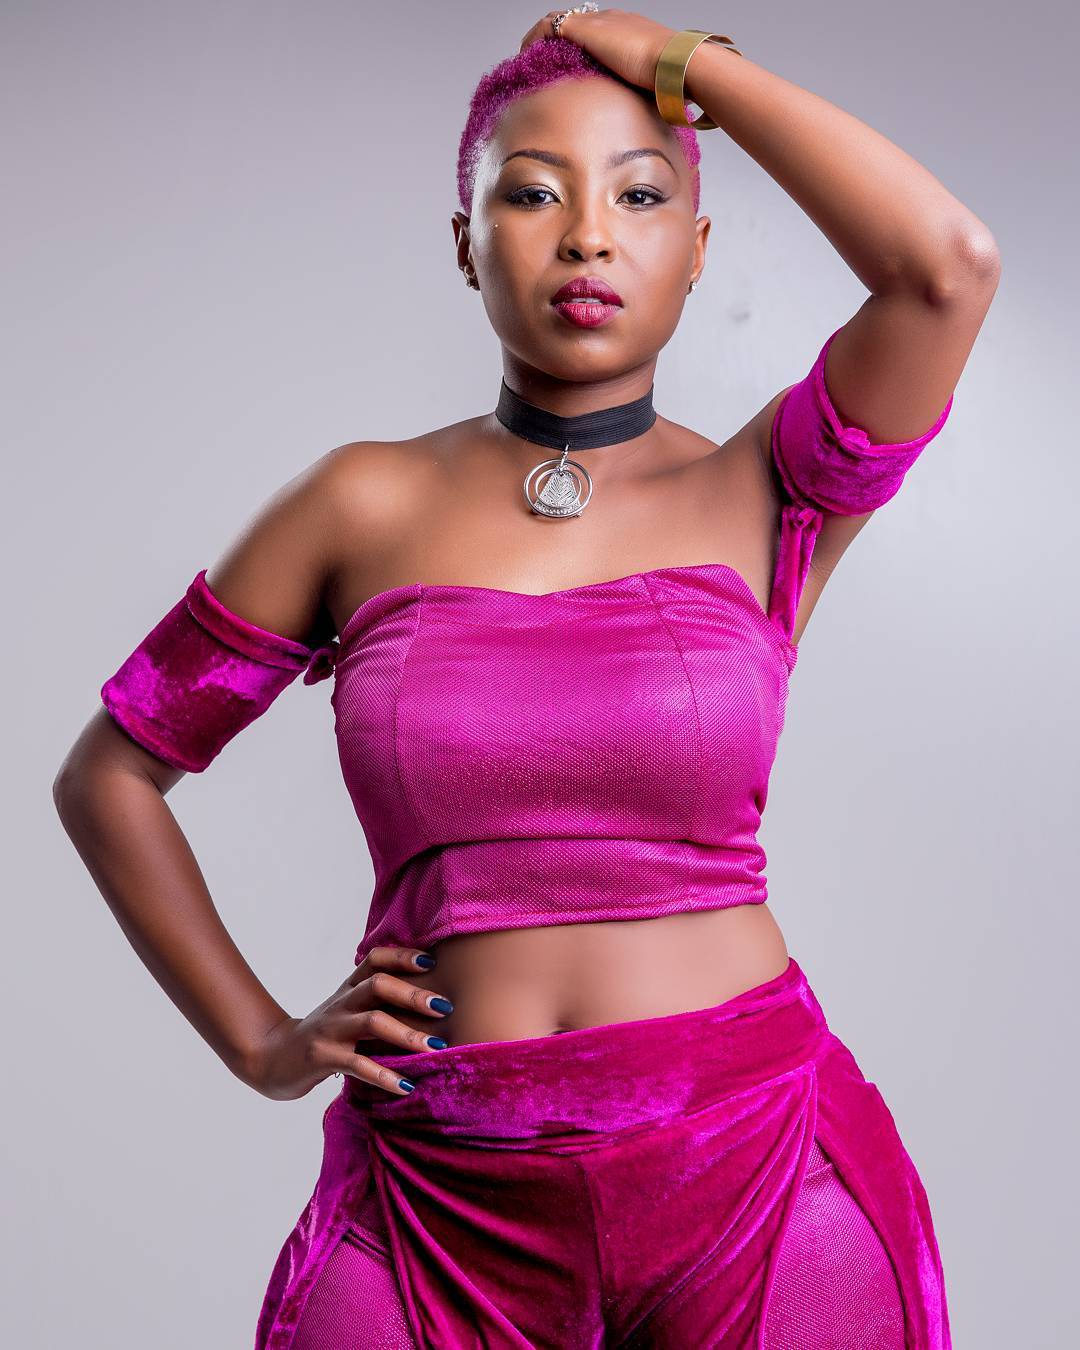 vivianne - 'I was told I couldn't be a celeb for not having hips,' cried Nadia Mukami